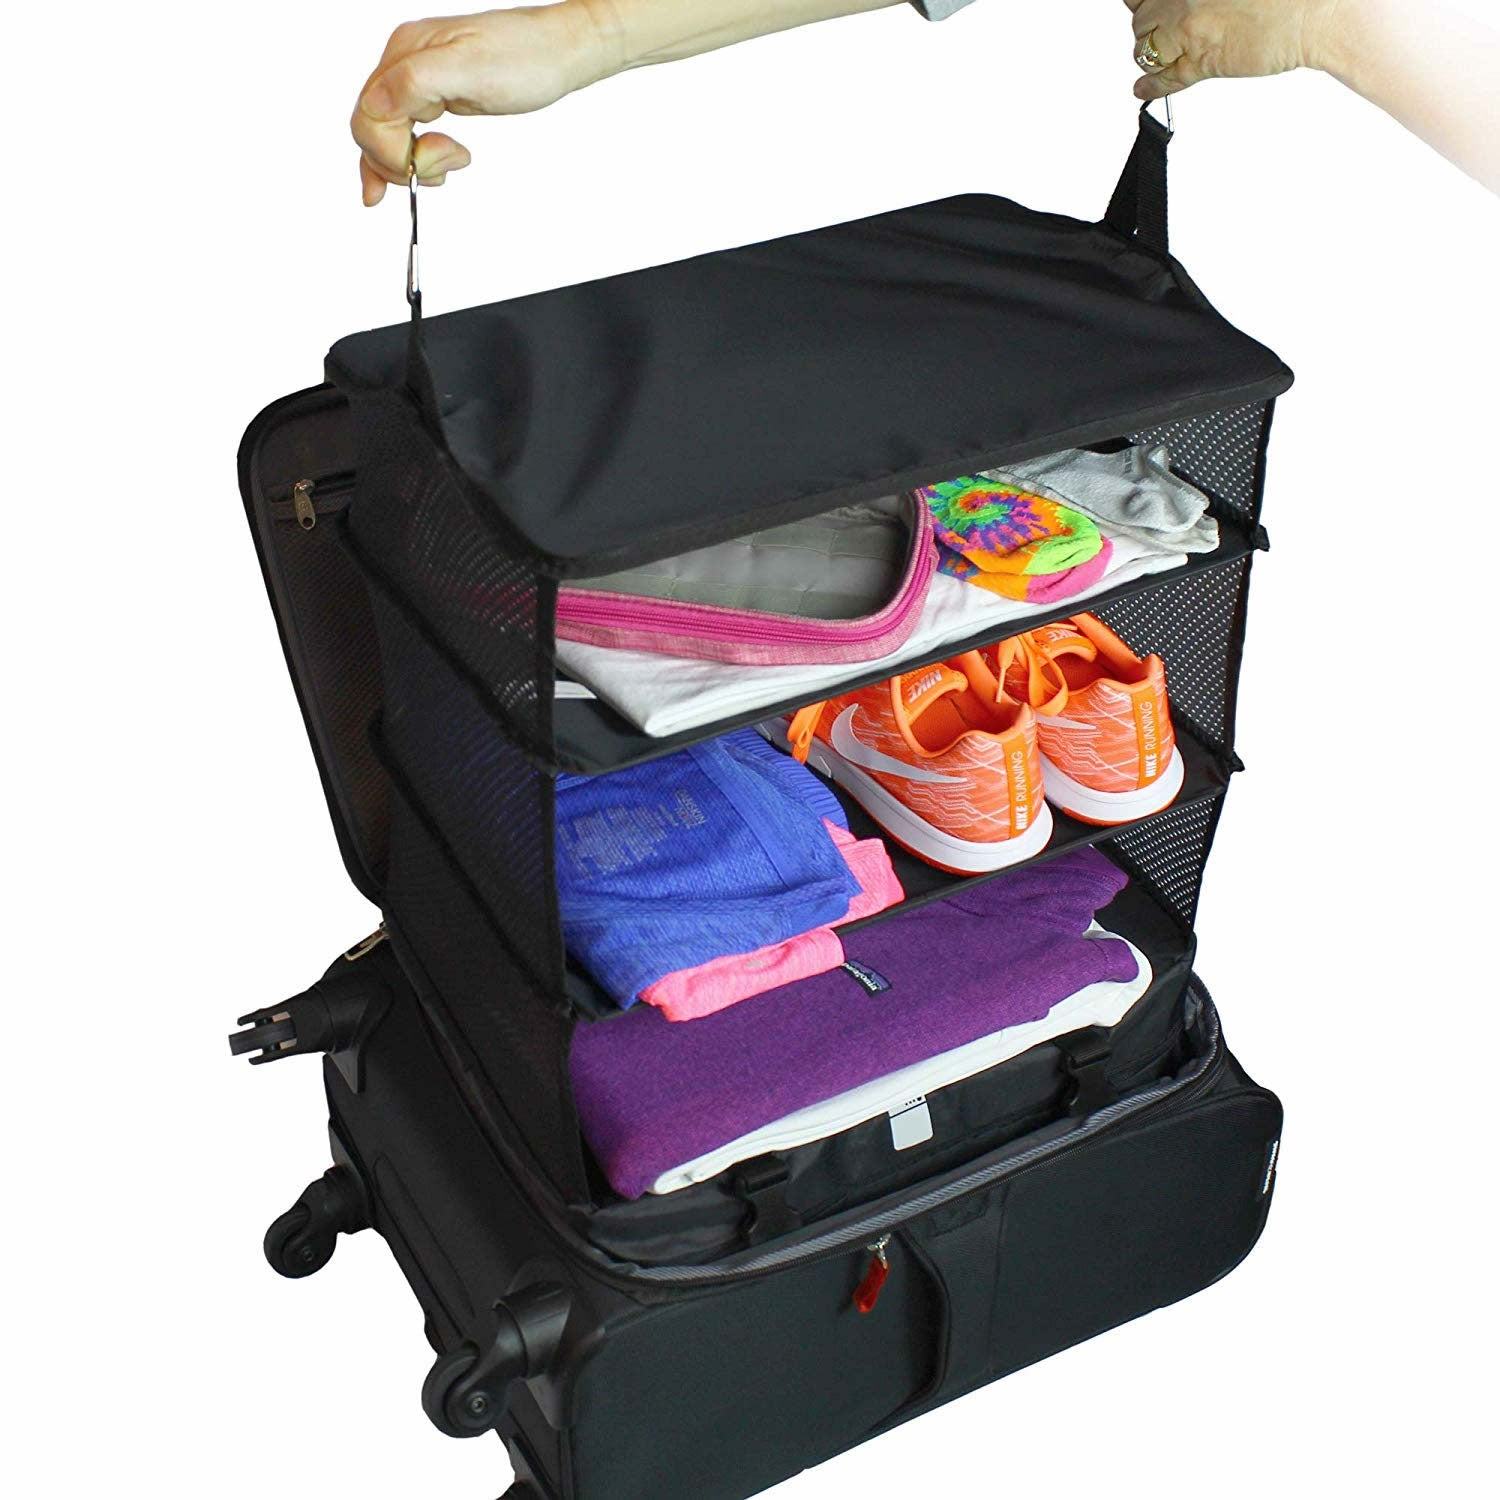 shopify-Carry On Closet Baggage Organizer-4